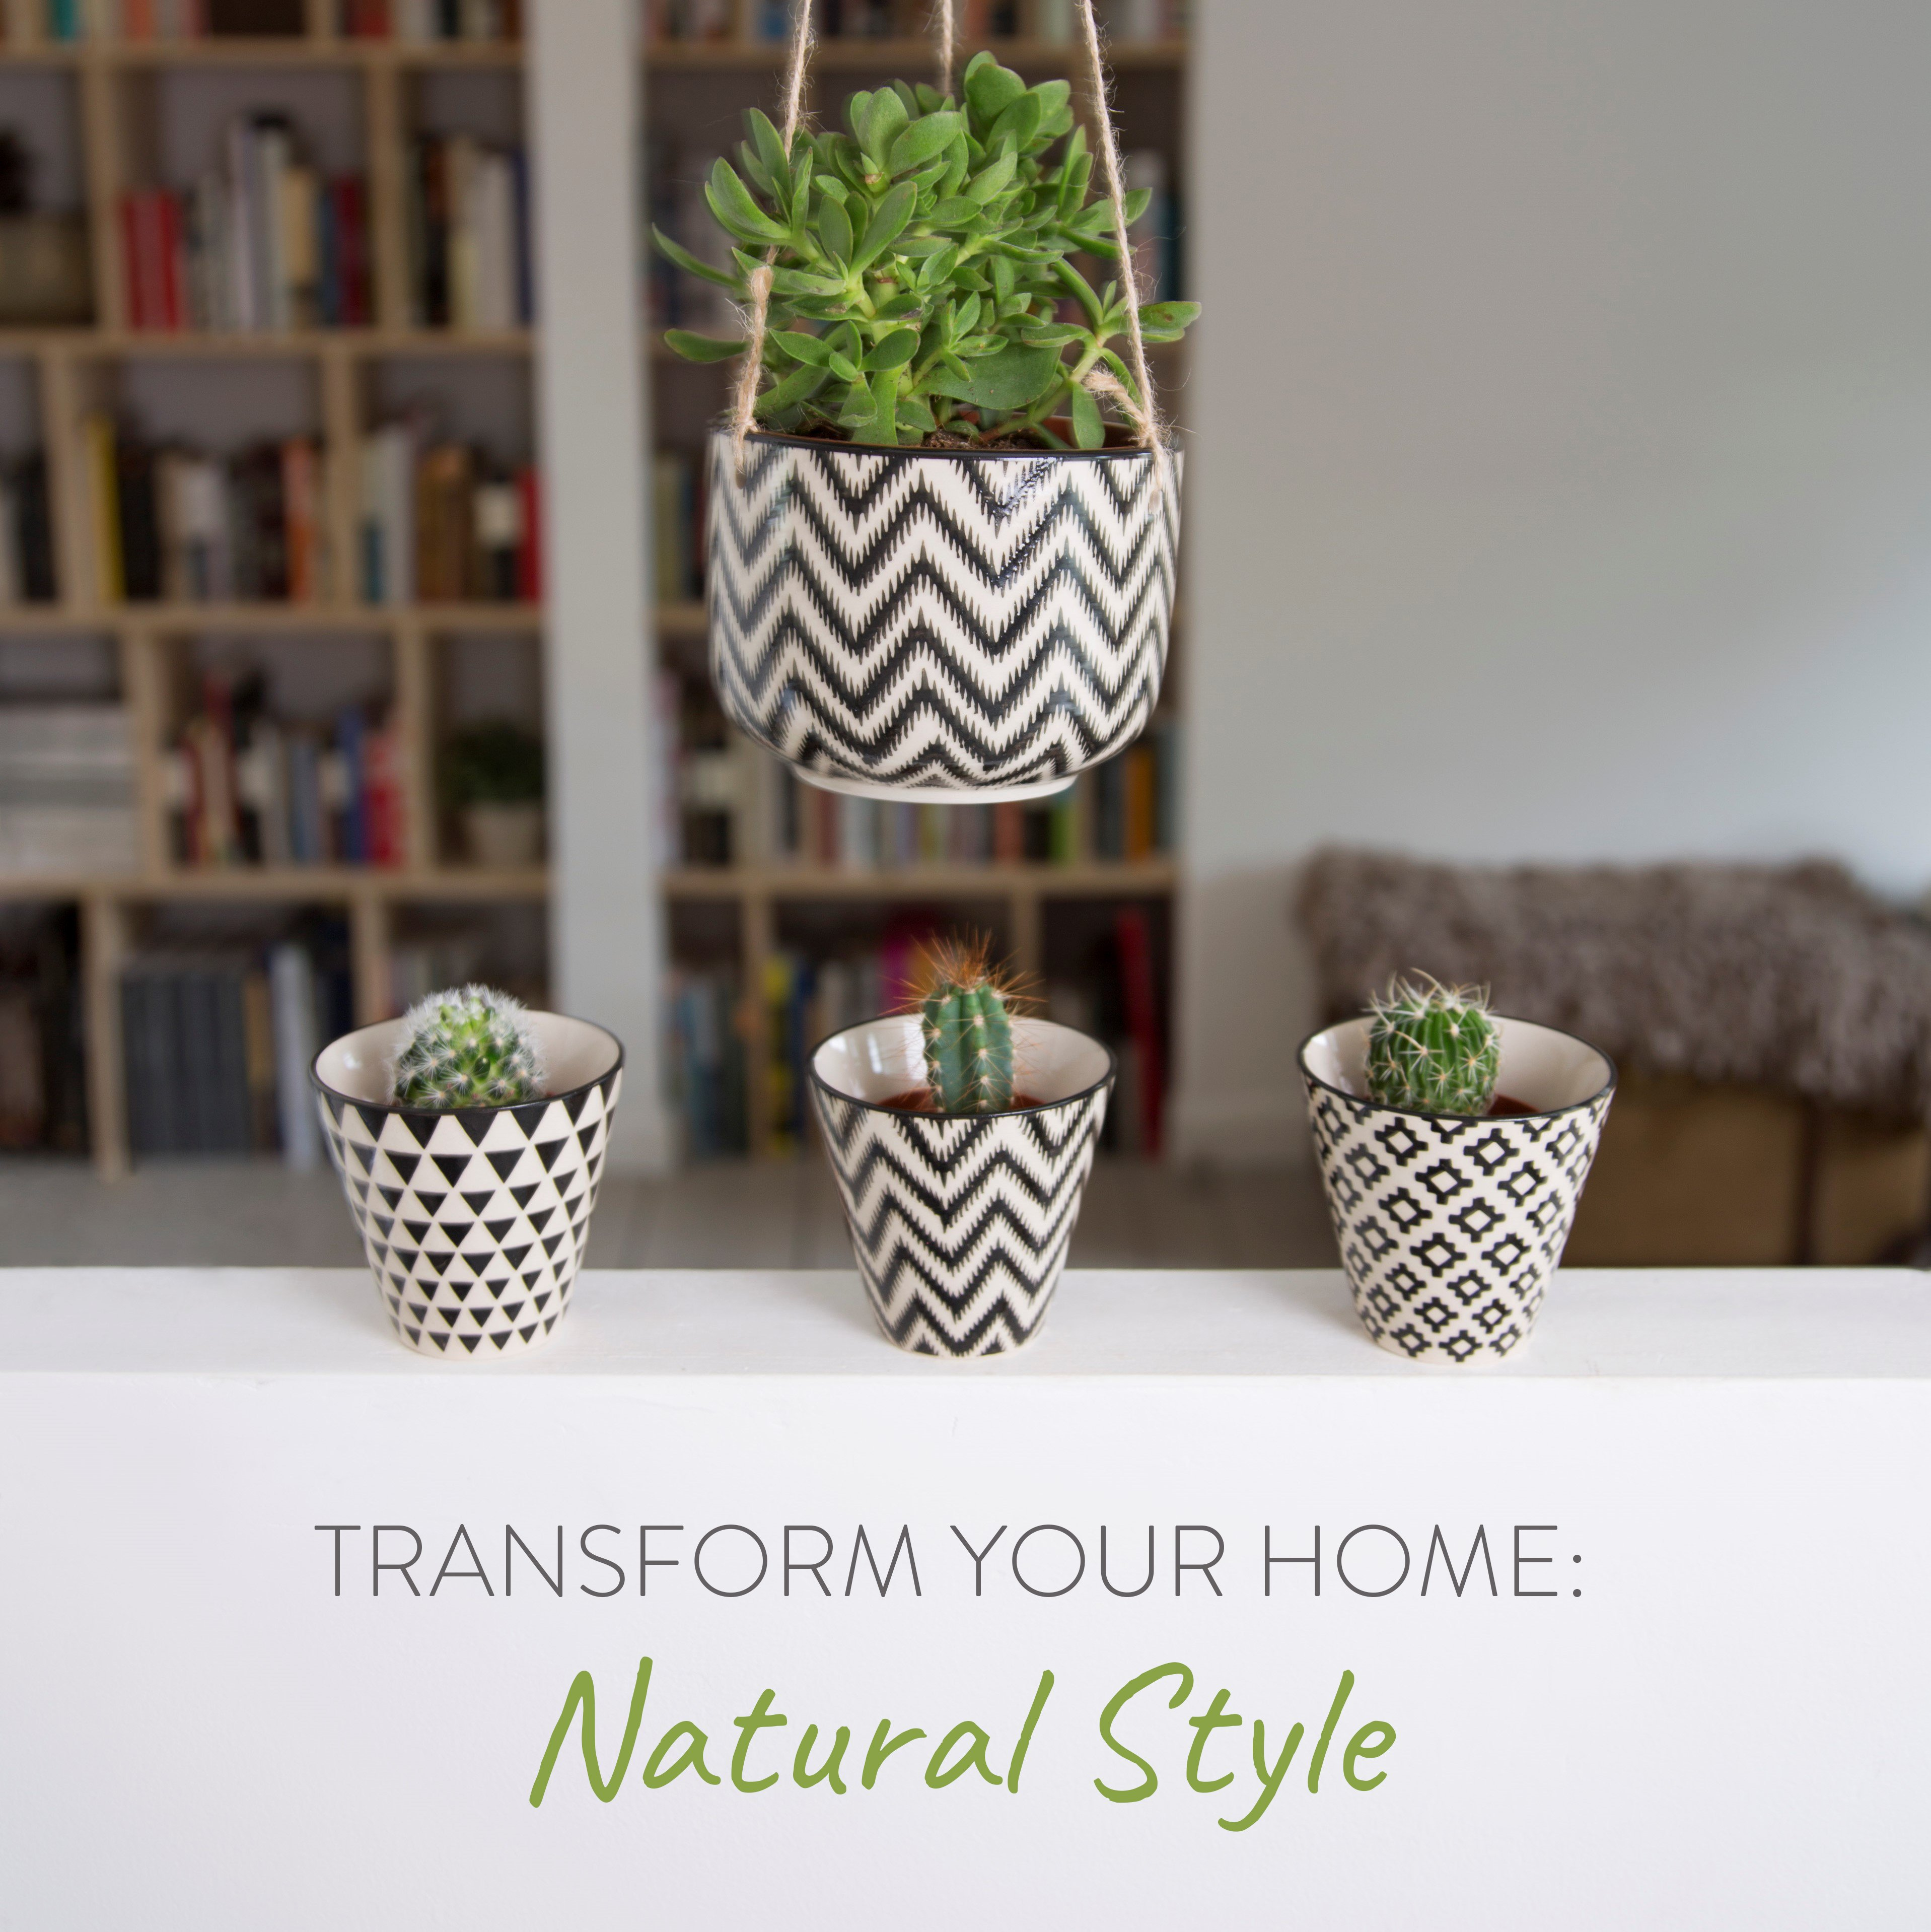 How to add natural style to your home blog post cover image.jpg